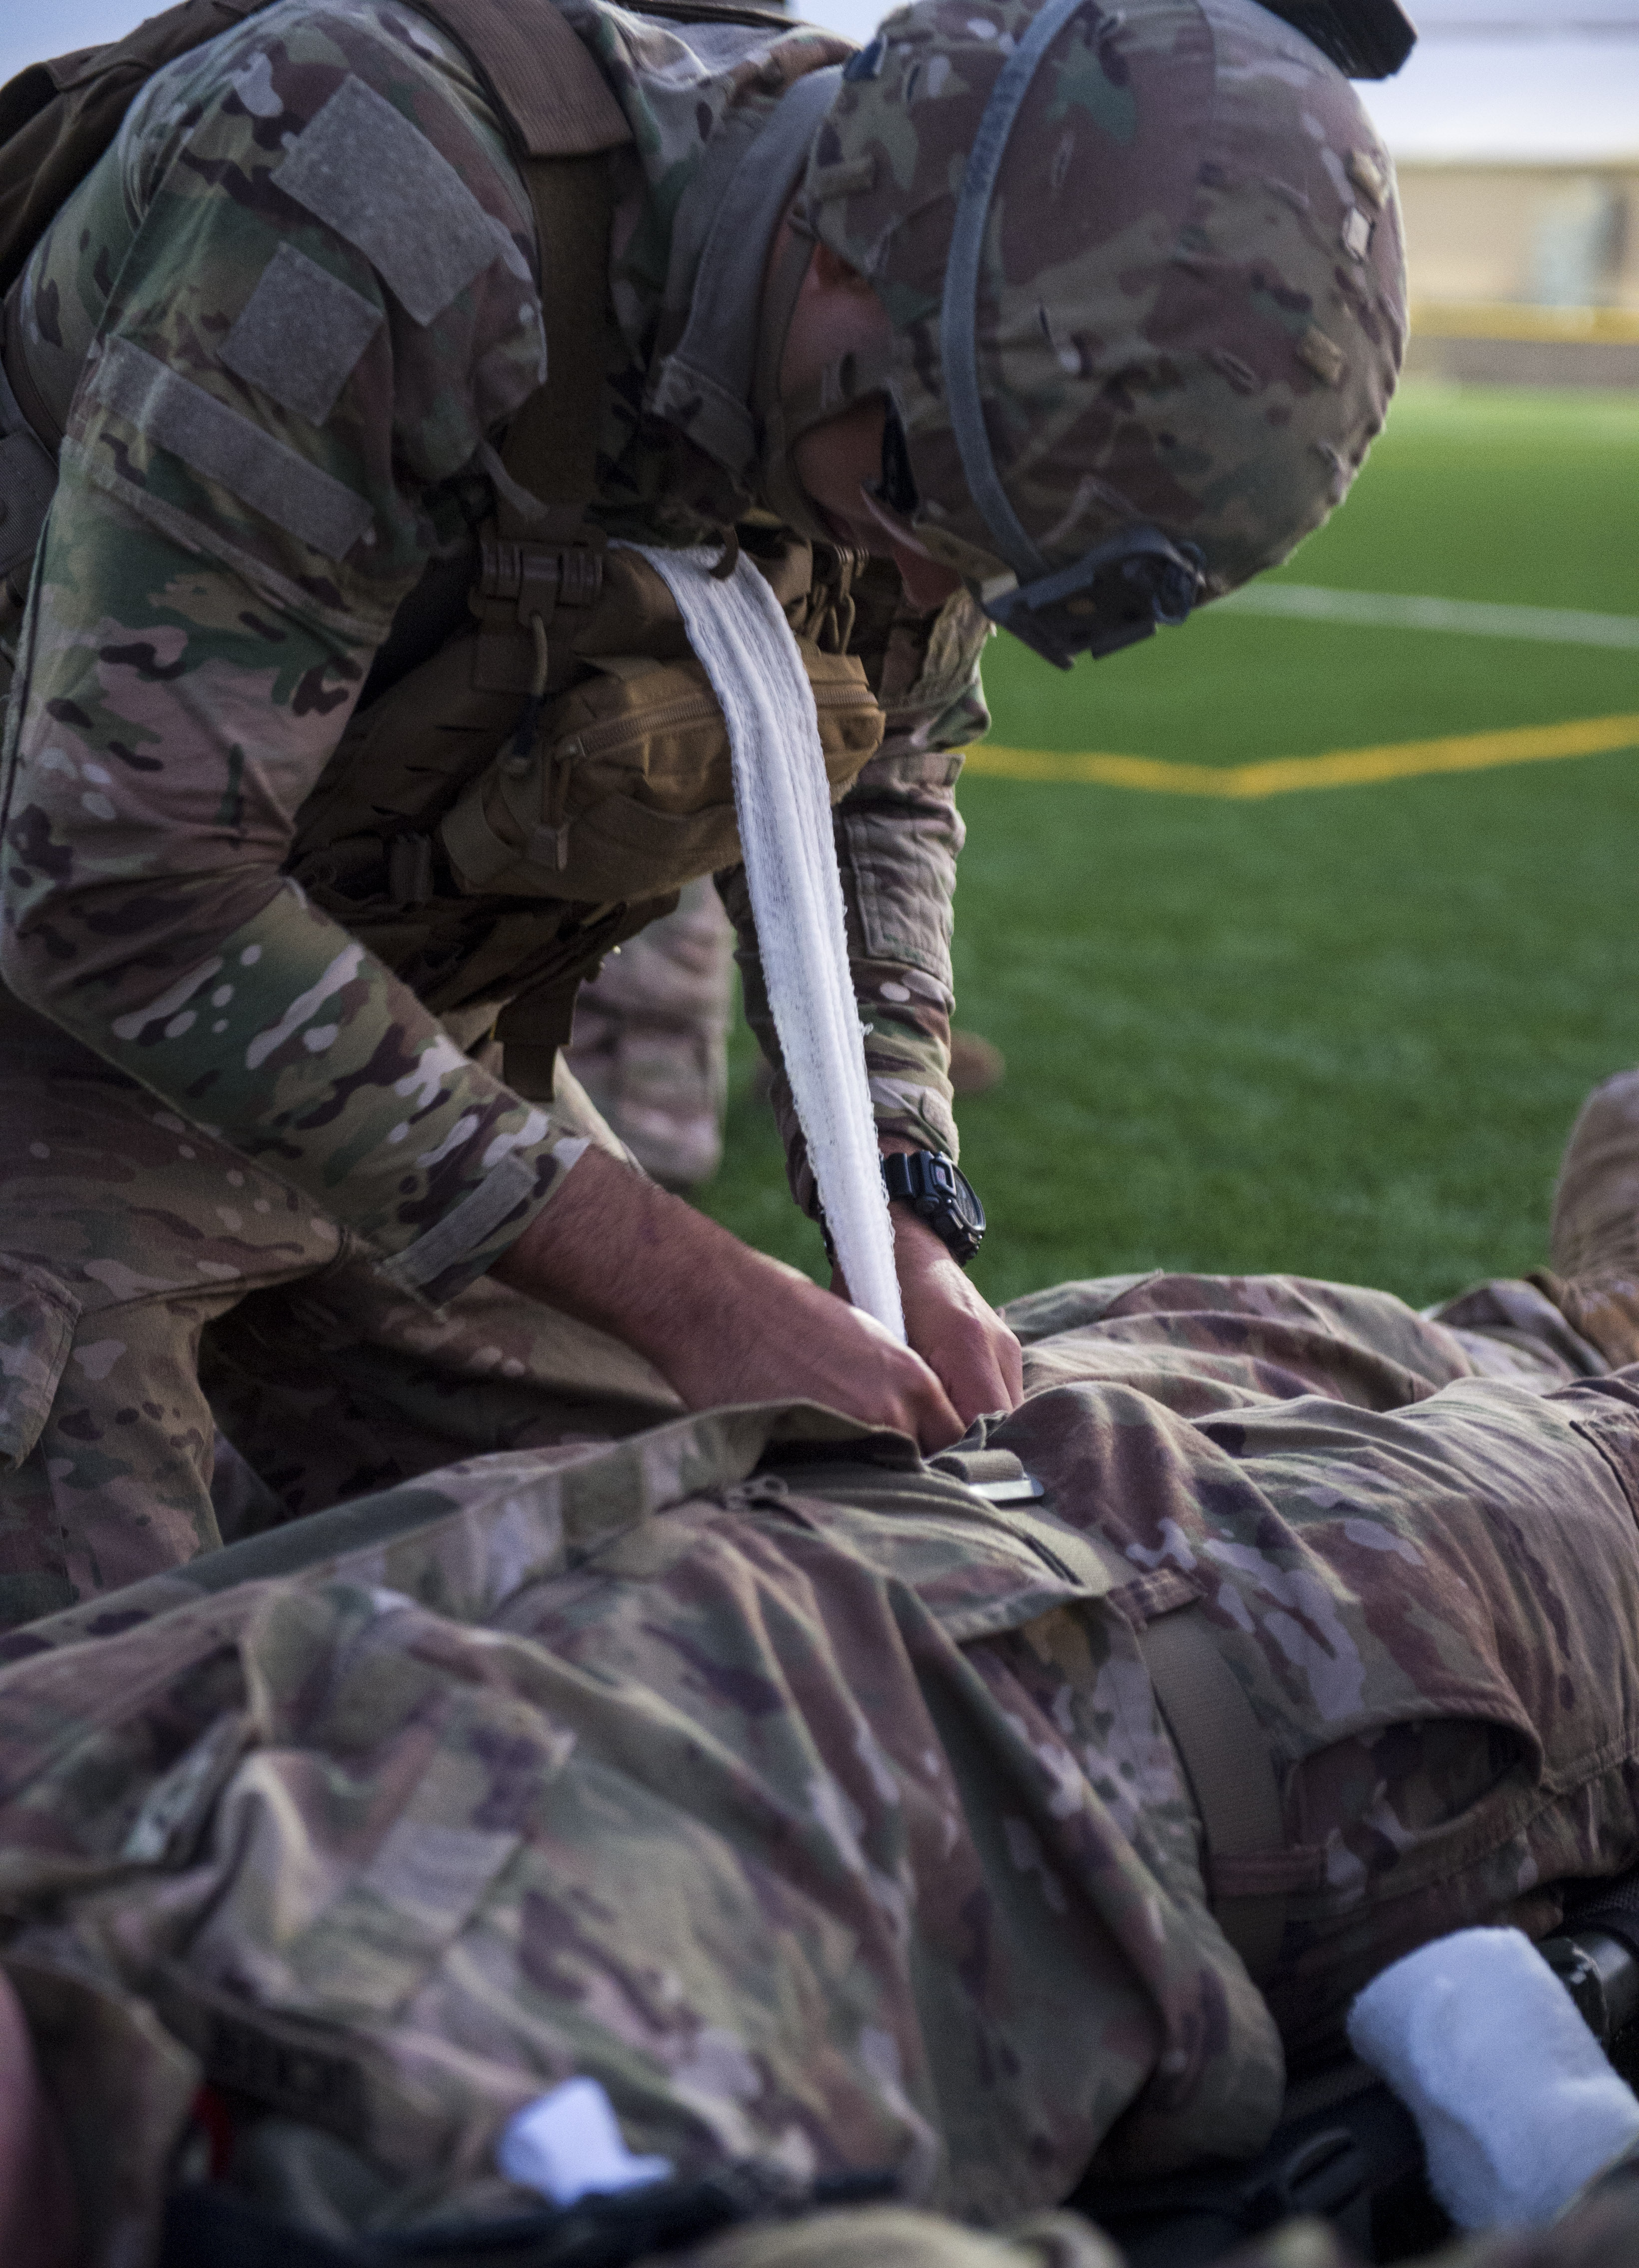 A U.S. Army site security team Soldier assigned to Task Force Bayonet, Combined Joint Task Force - Horn of Africa, simulates packing combat gauze into a simulated wound of a fellow Soldier during a Combat Lifesaver (CLS) training event at Camp Lemonnier, Djibouti, Dec. 30, 2017. Participants demonstrated CLS principals during scenarios that simulated being under enemy fire, having the possibility to come under enemy fire, and moving casualties to medical facilities. (U.S. Air Force photo by Staff Sgt. Timothy Moore)